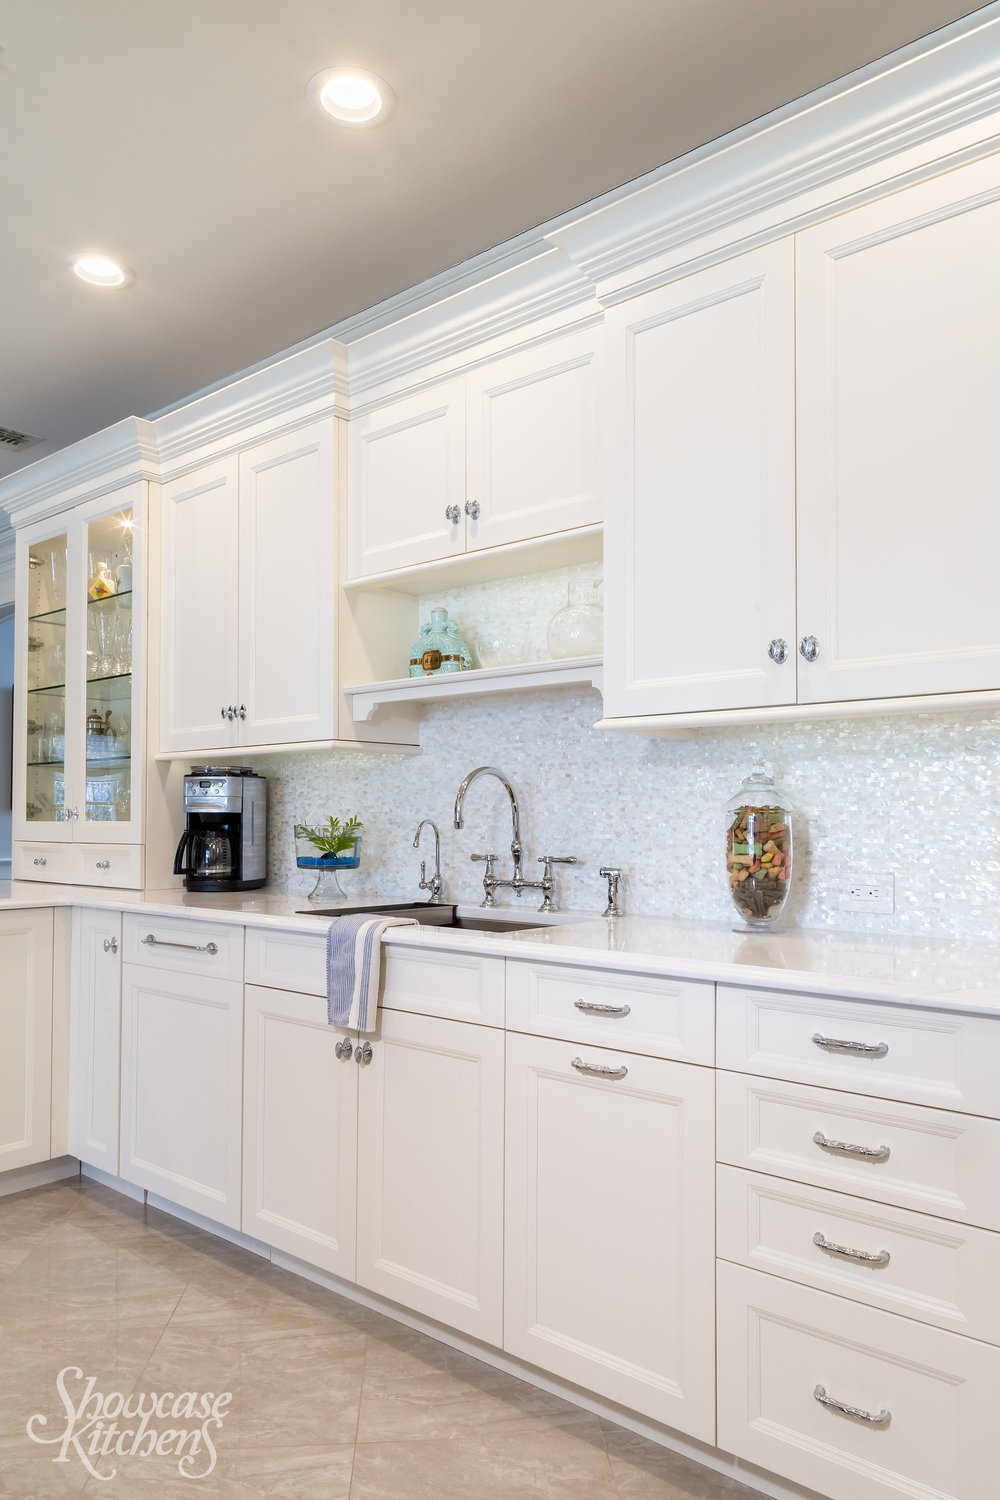 Transitional style kitchen with plenty of pull out and upper cabinets